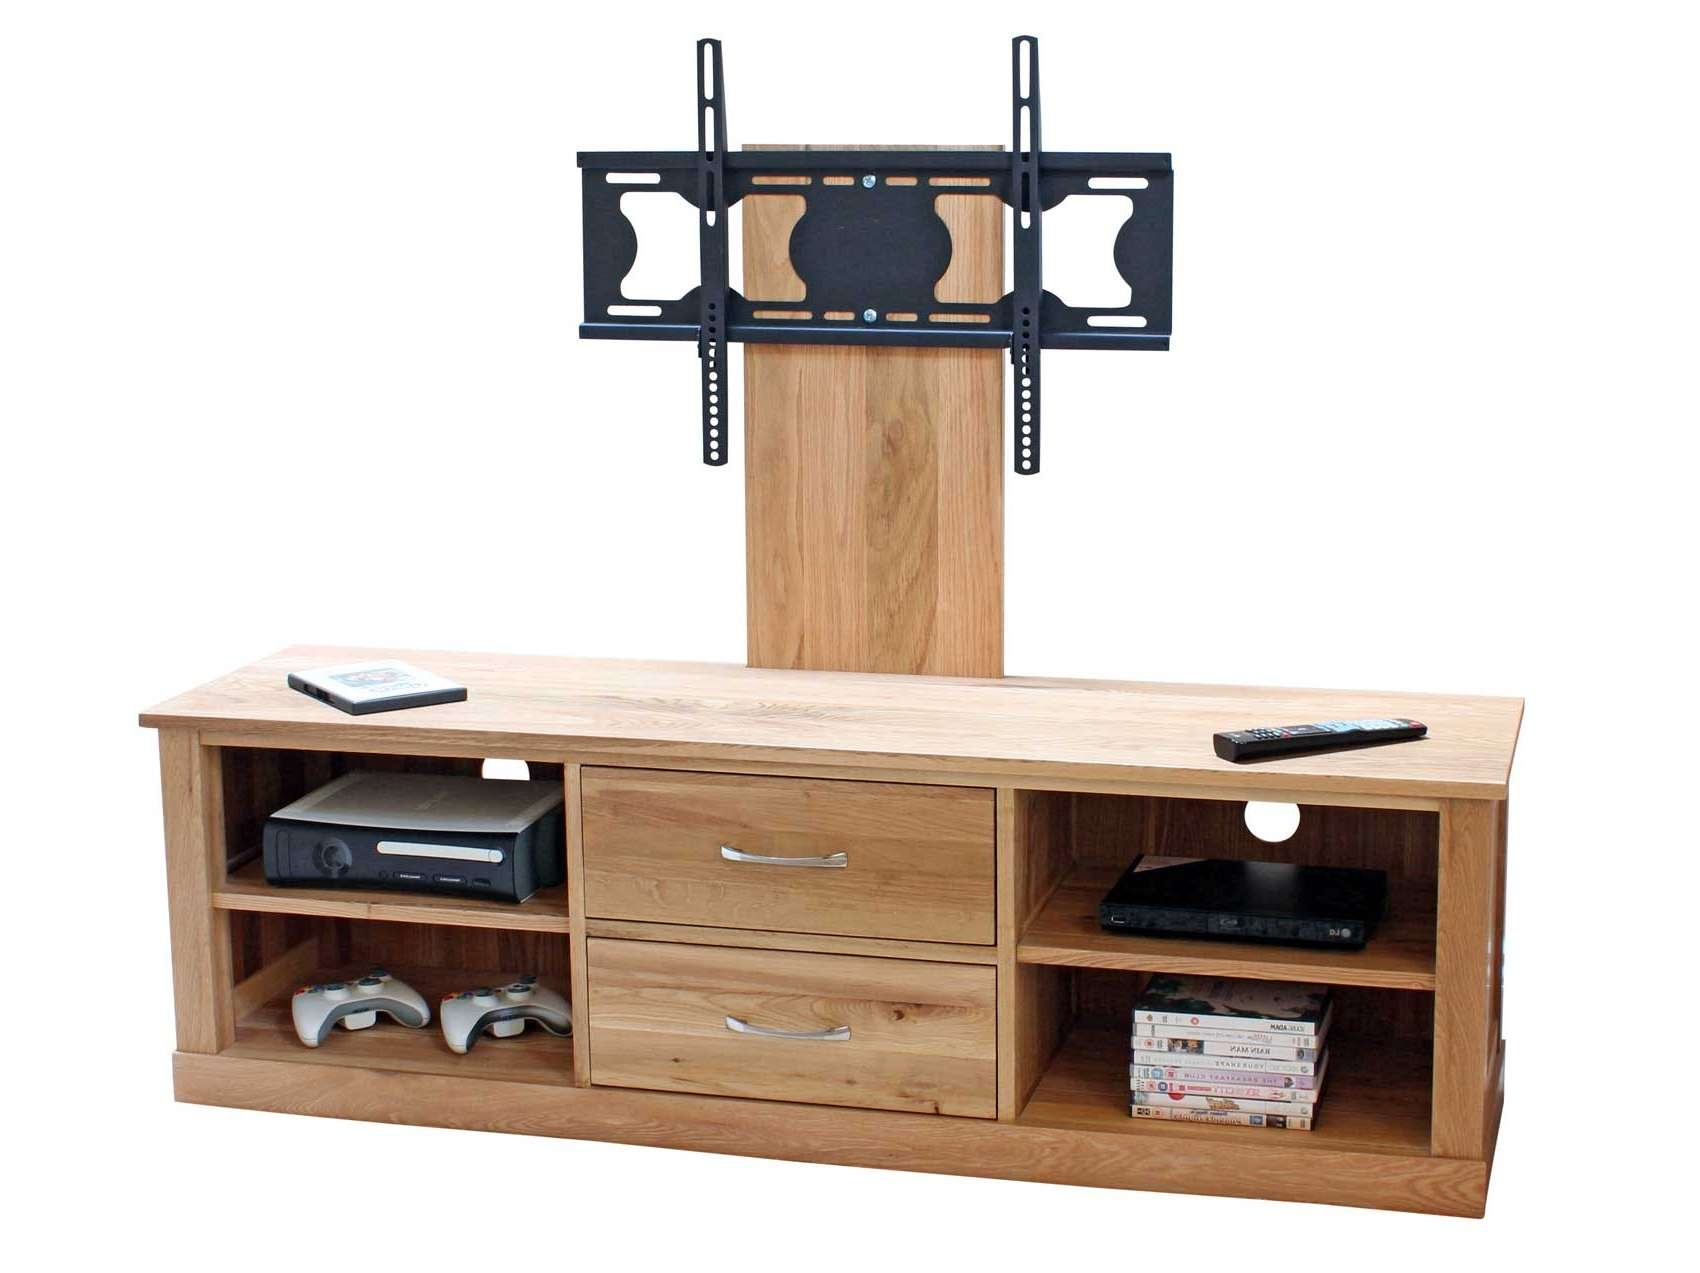 Oak Wooden Tv Stand With Mount For Flat Screen Of 14 Gorgeous Pertaining To Wood Tv Stands With Swivel Mount (View 6 of 15)